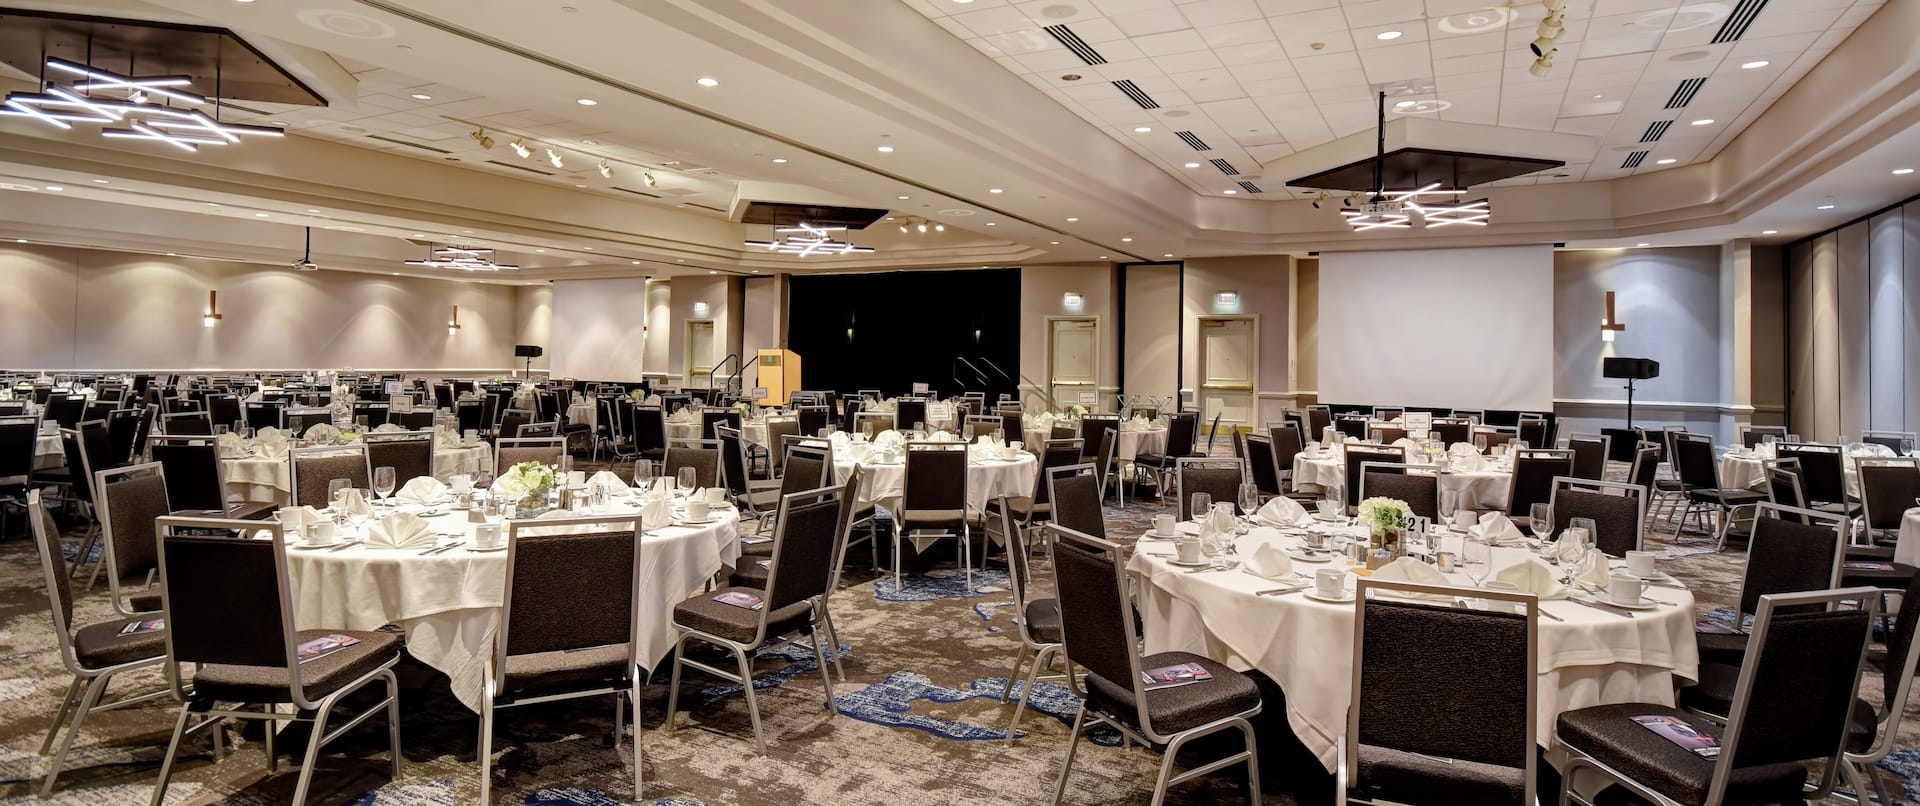 Grand Ballroom with Banquet Setup and Projectors